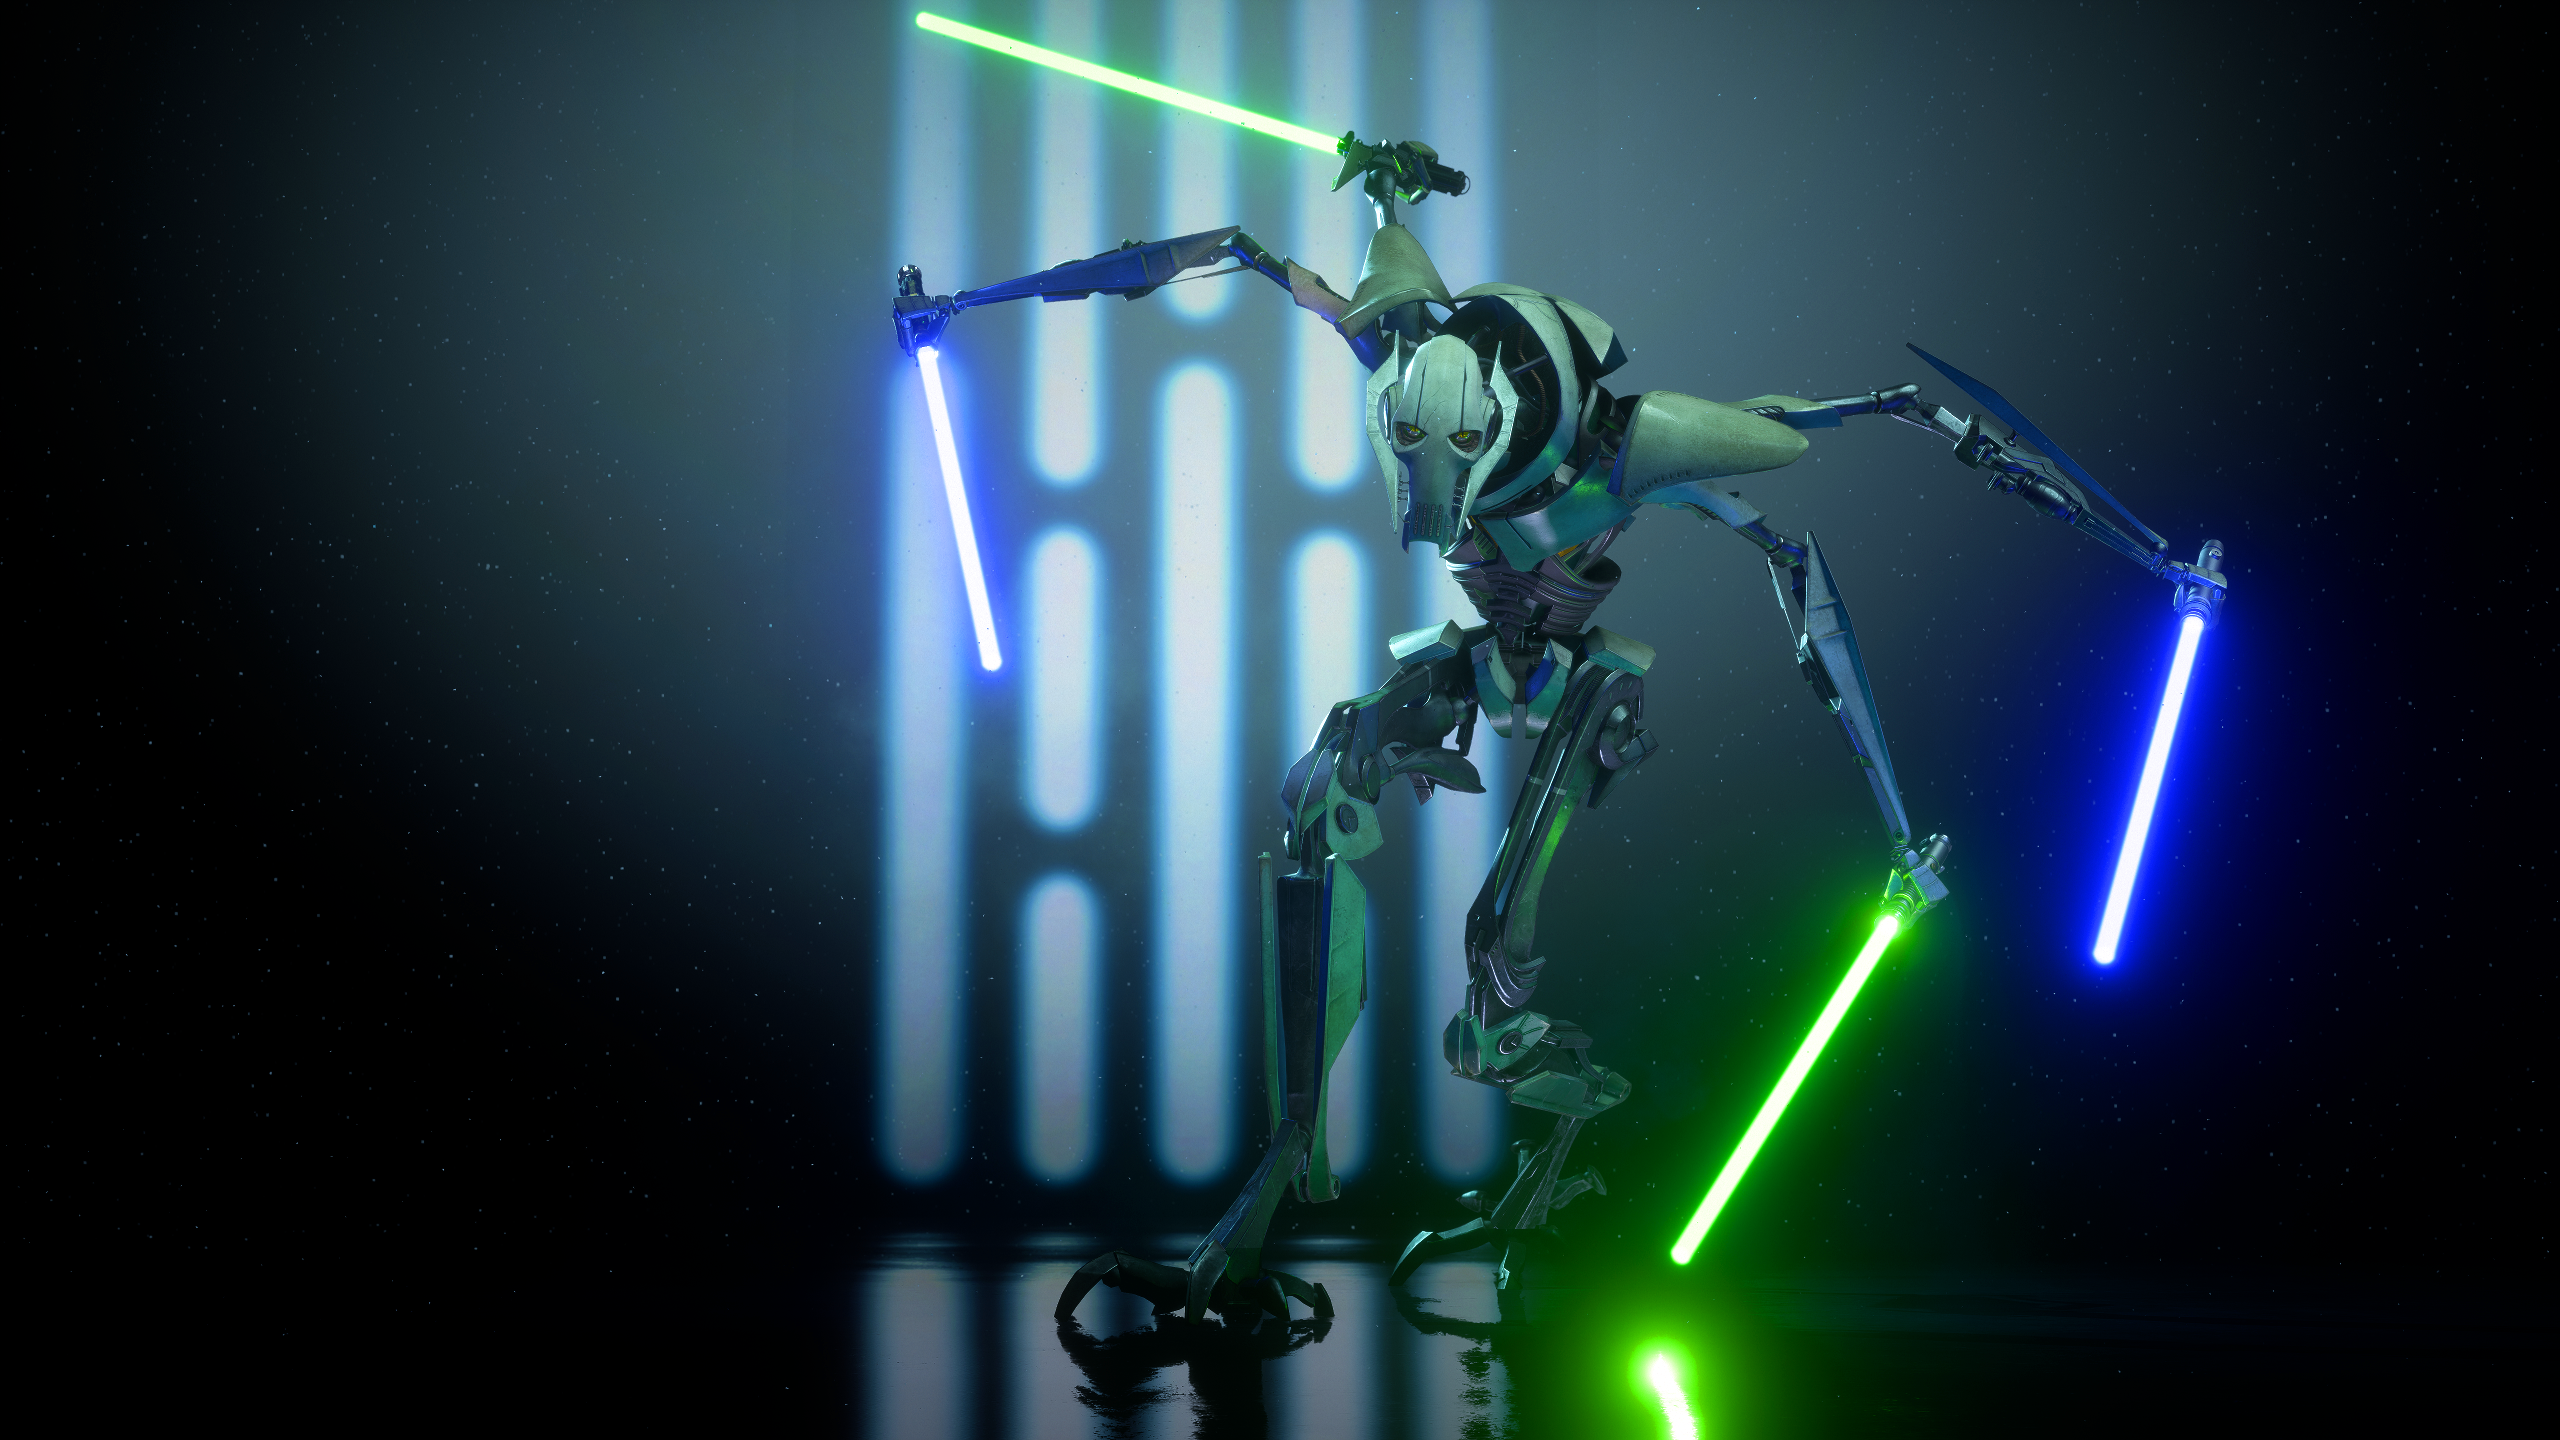 General Grievous Wallpaper Hd Posted By Christopher Simpson